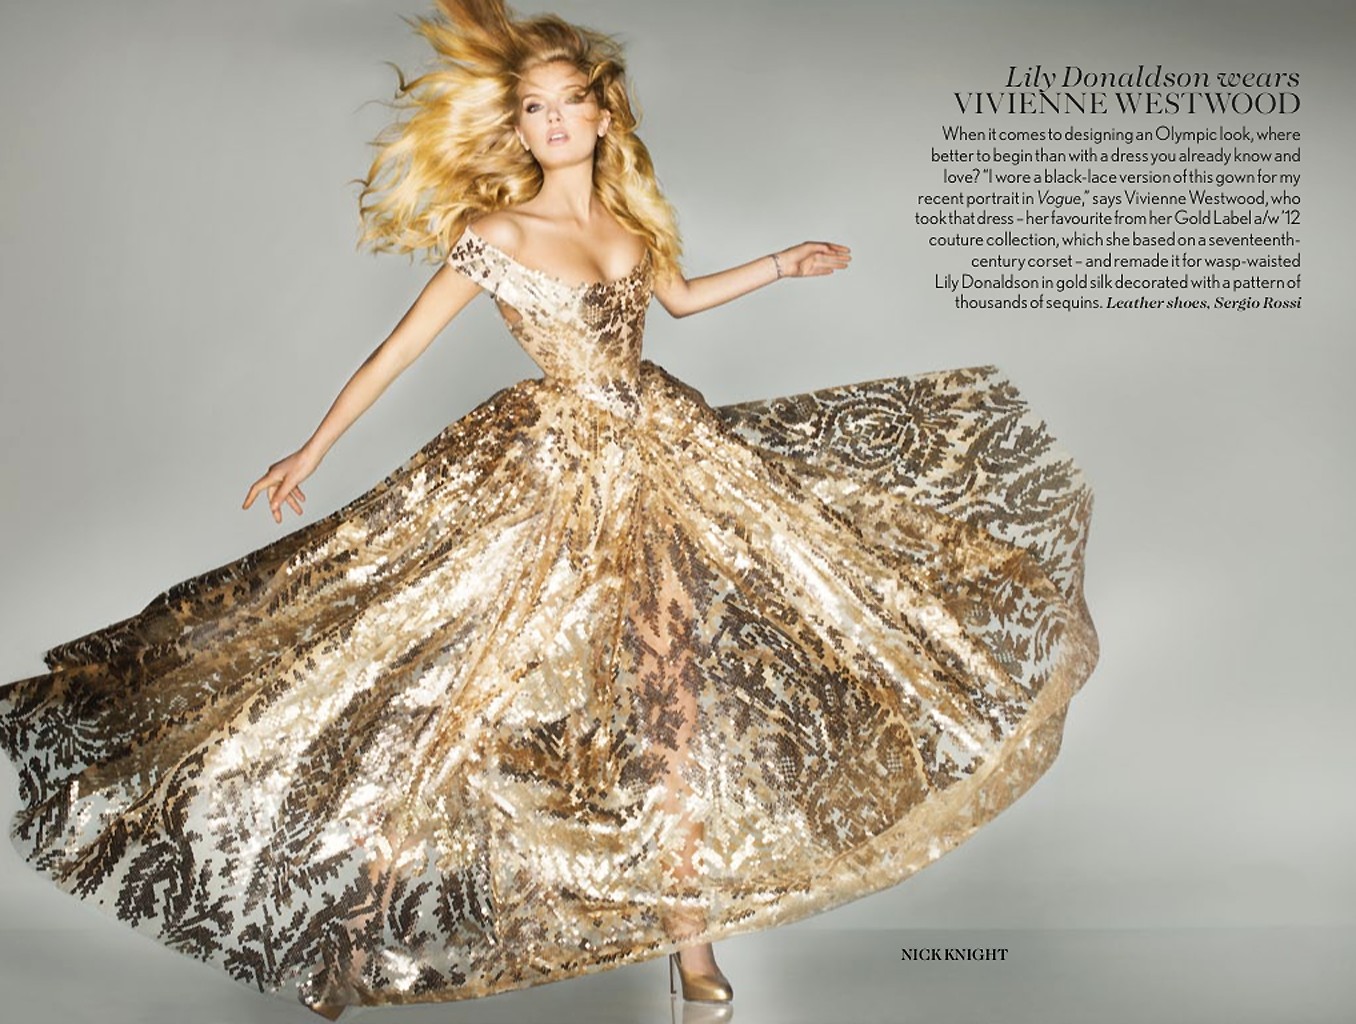 http://4.bp.blogspot.com/-ERPo7XiB8Tc/UEDRGtPWy0I/AAAAAAAACDY/tztJeaXBKpE/s1600/Lily-Donaldson--for-Vogue-UK-September-2012.png